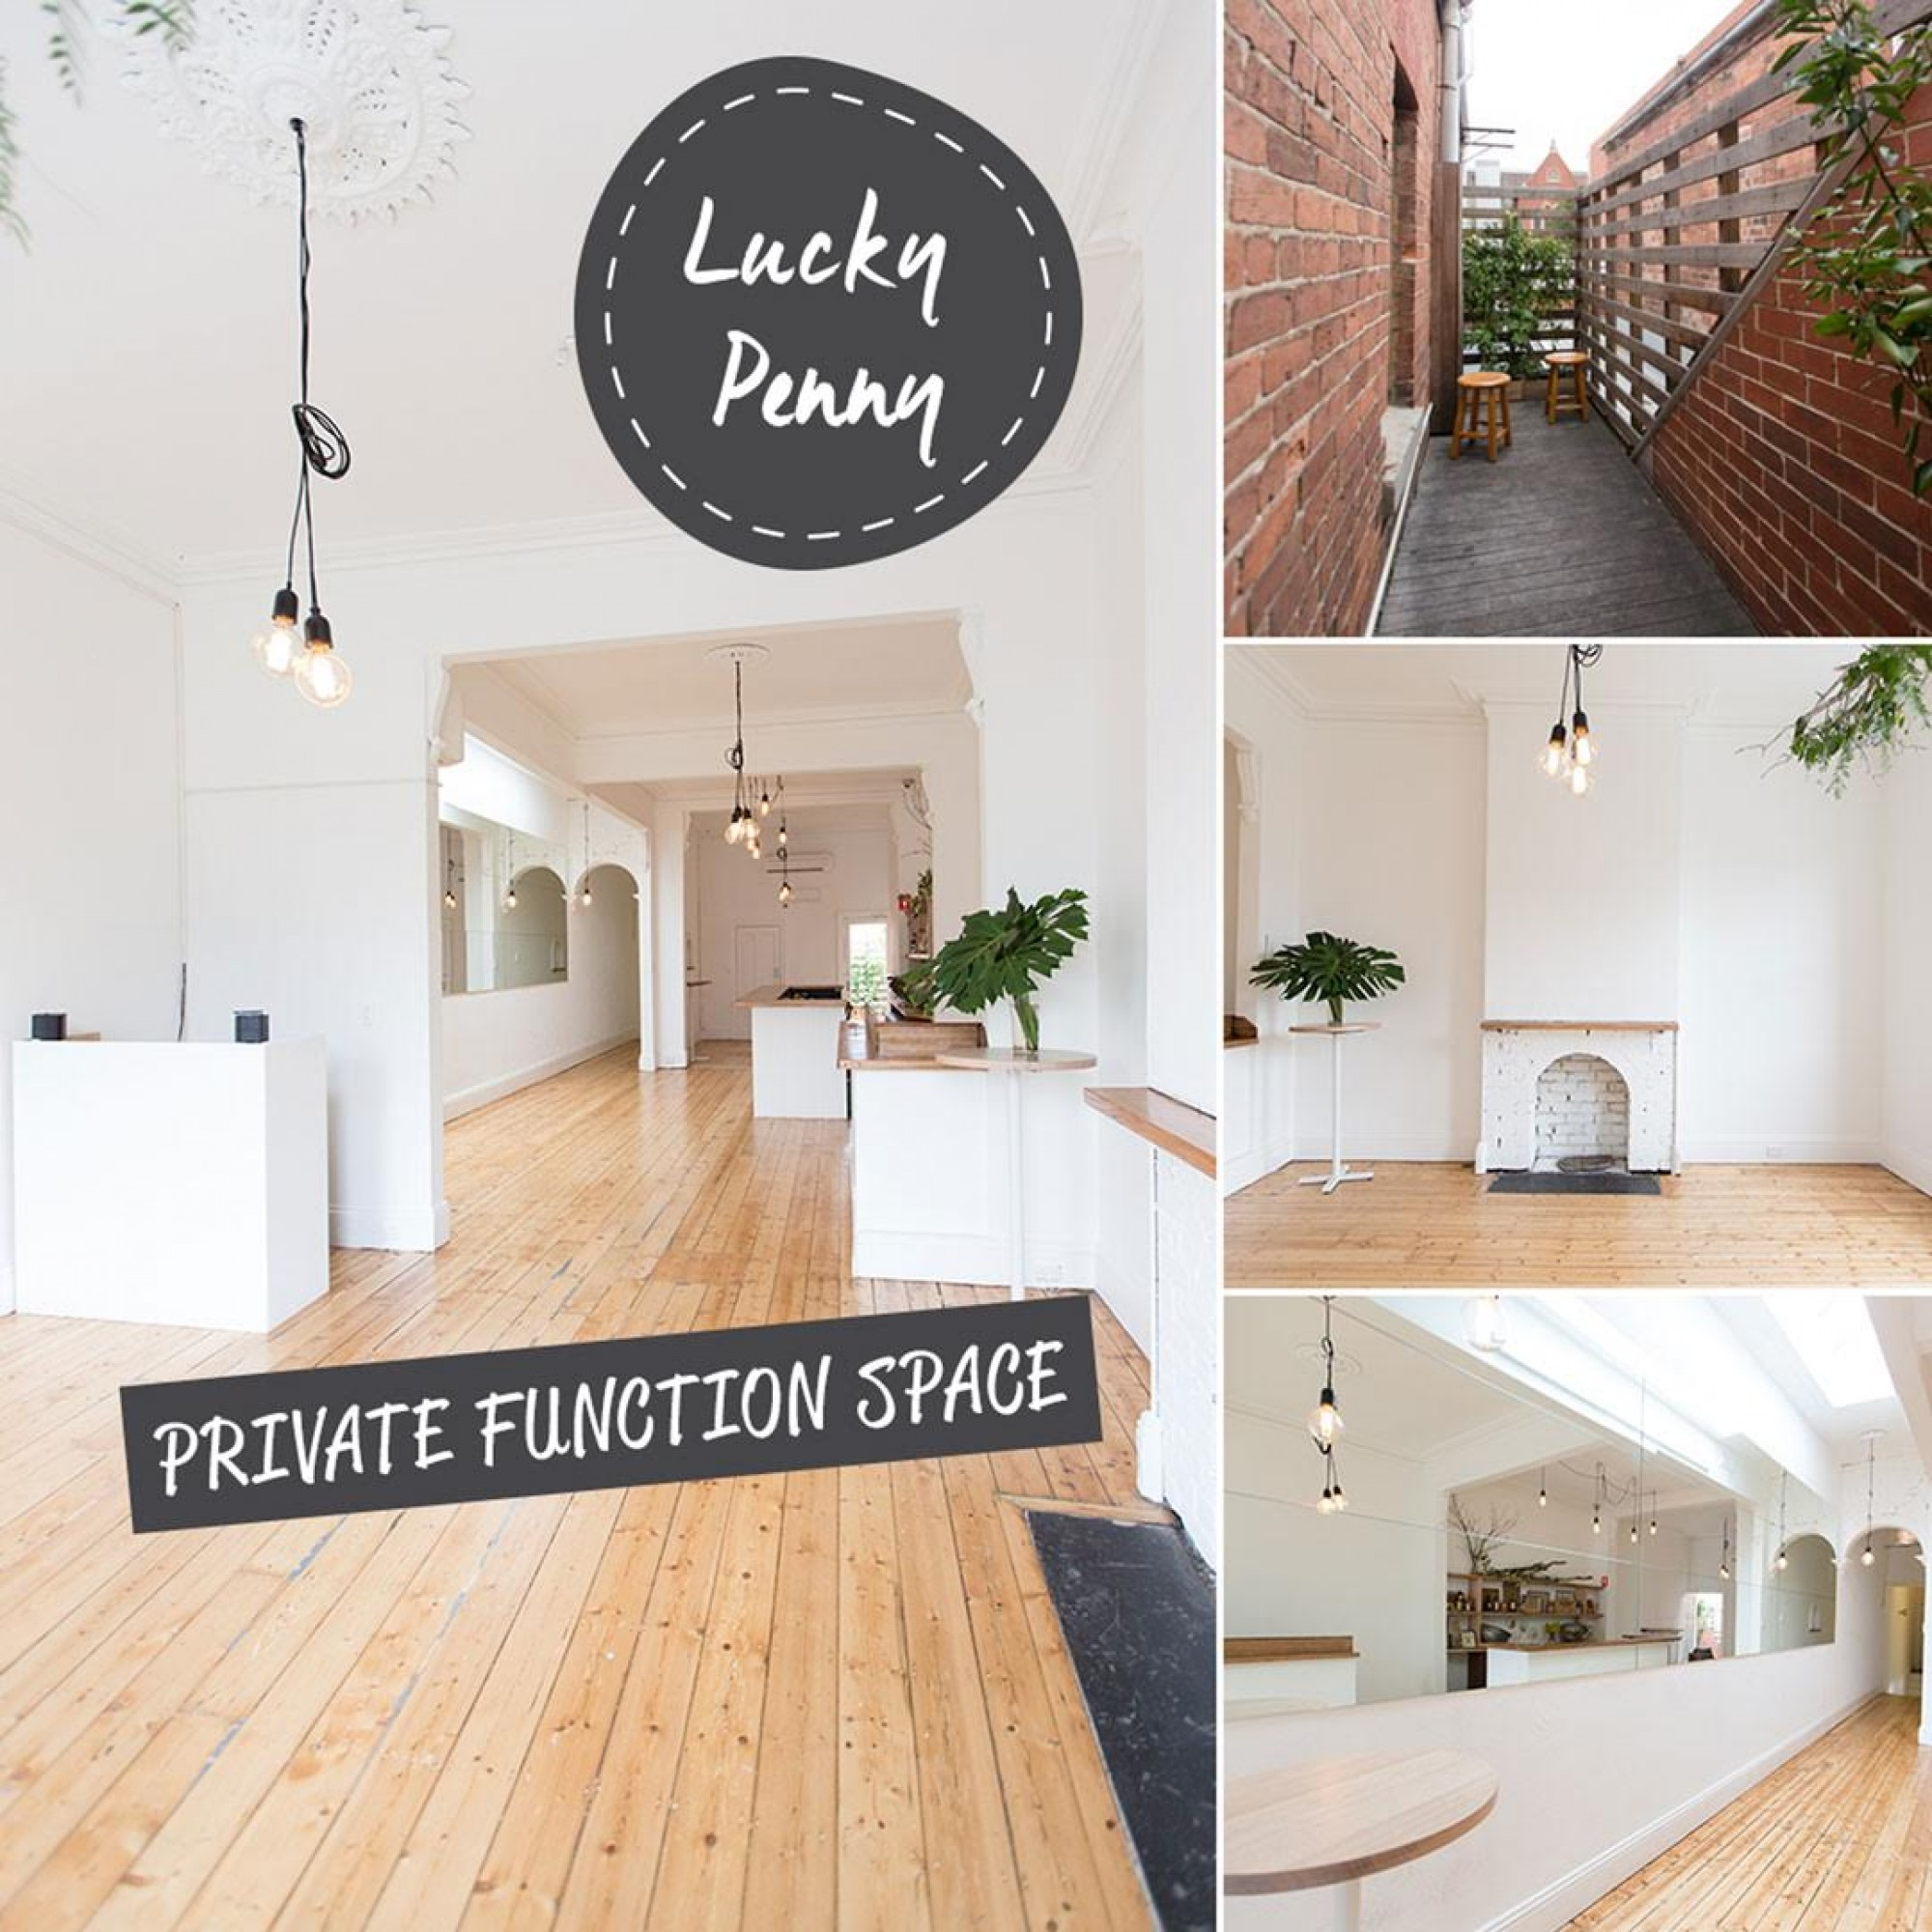 Chapel Street Functions By The Lucky Penny: Book & Save